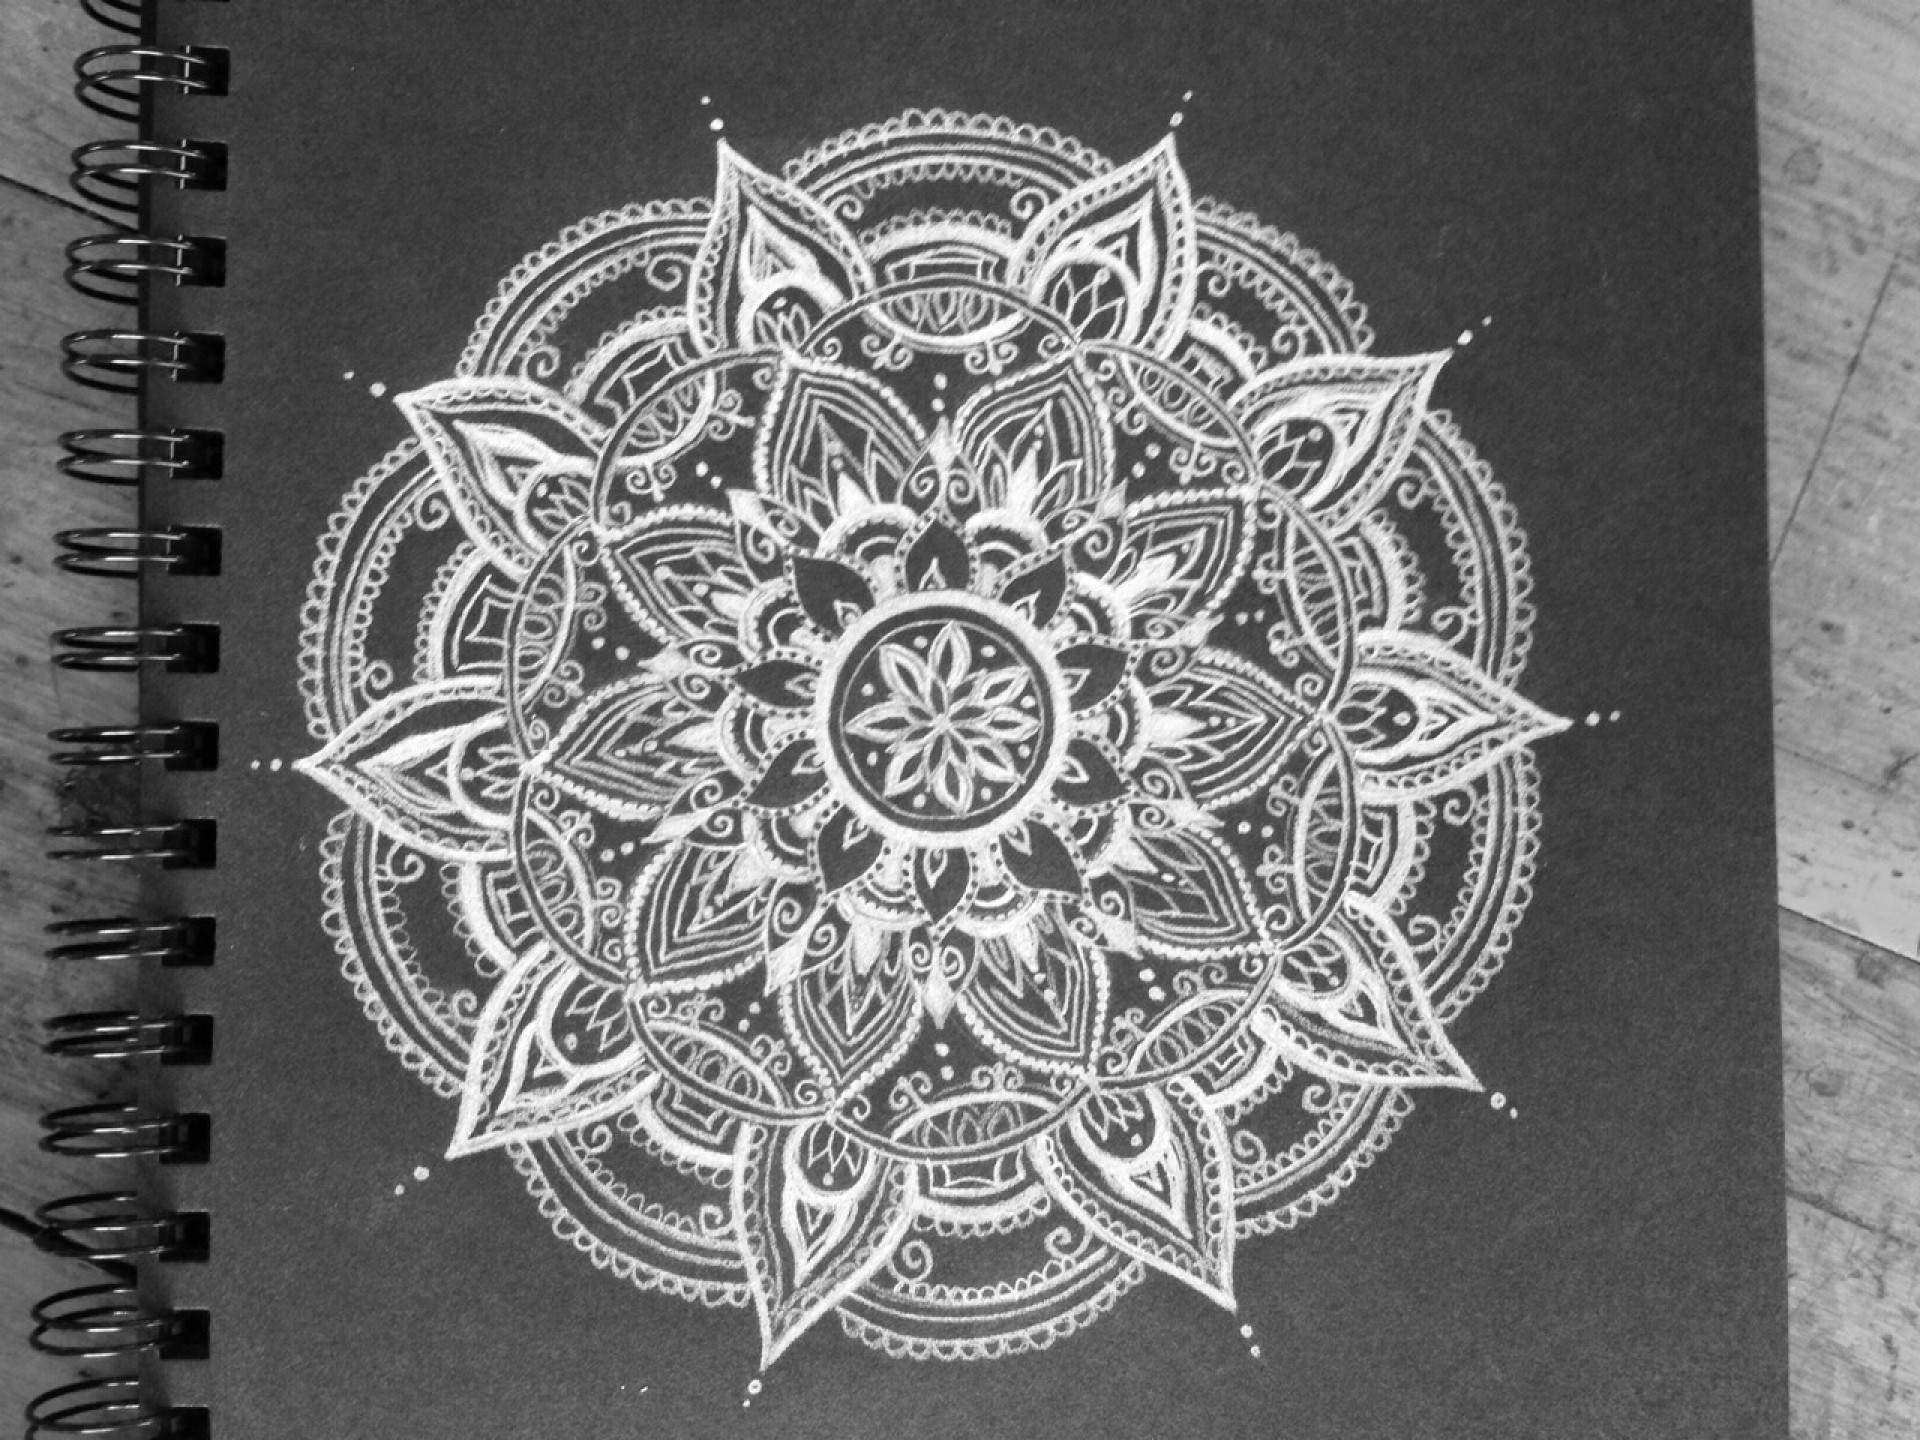 Res: 1920x1440, Art & Creative Wallpapers. Download the following Mandala Desktop ...